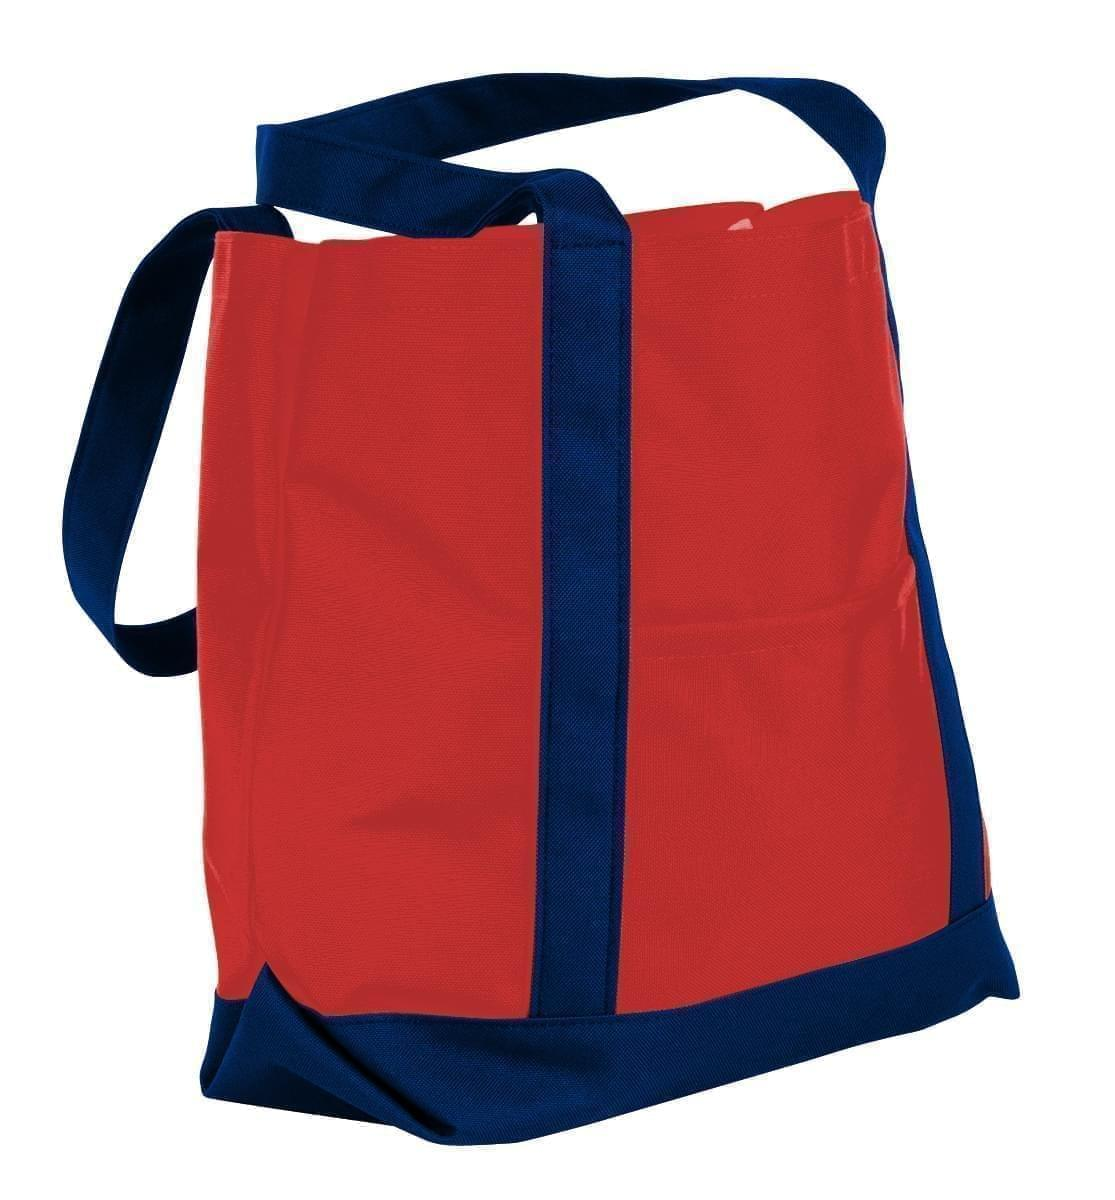 USA Made Nylon Poly Boat Tote Bags, Red-Navy, XAACL1UAZI